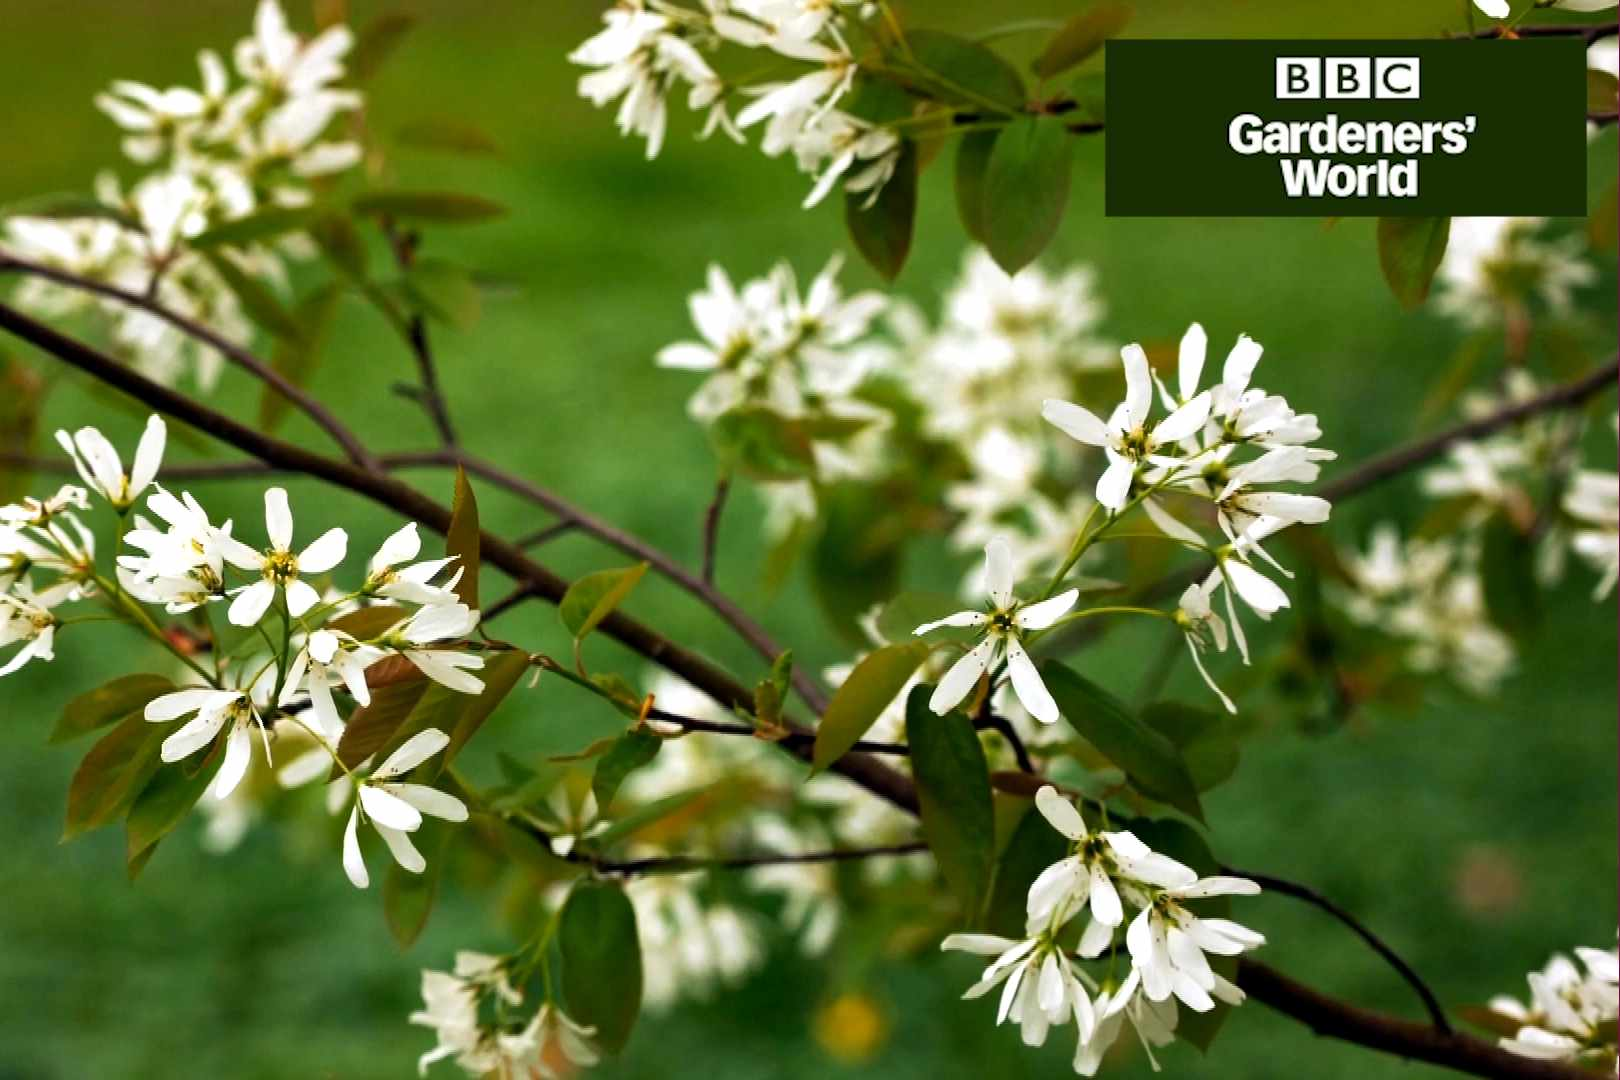 How to plant amelanchier - Gardeners' World programme clip